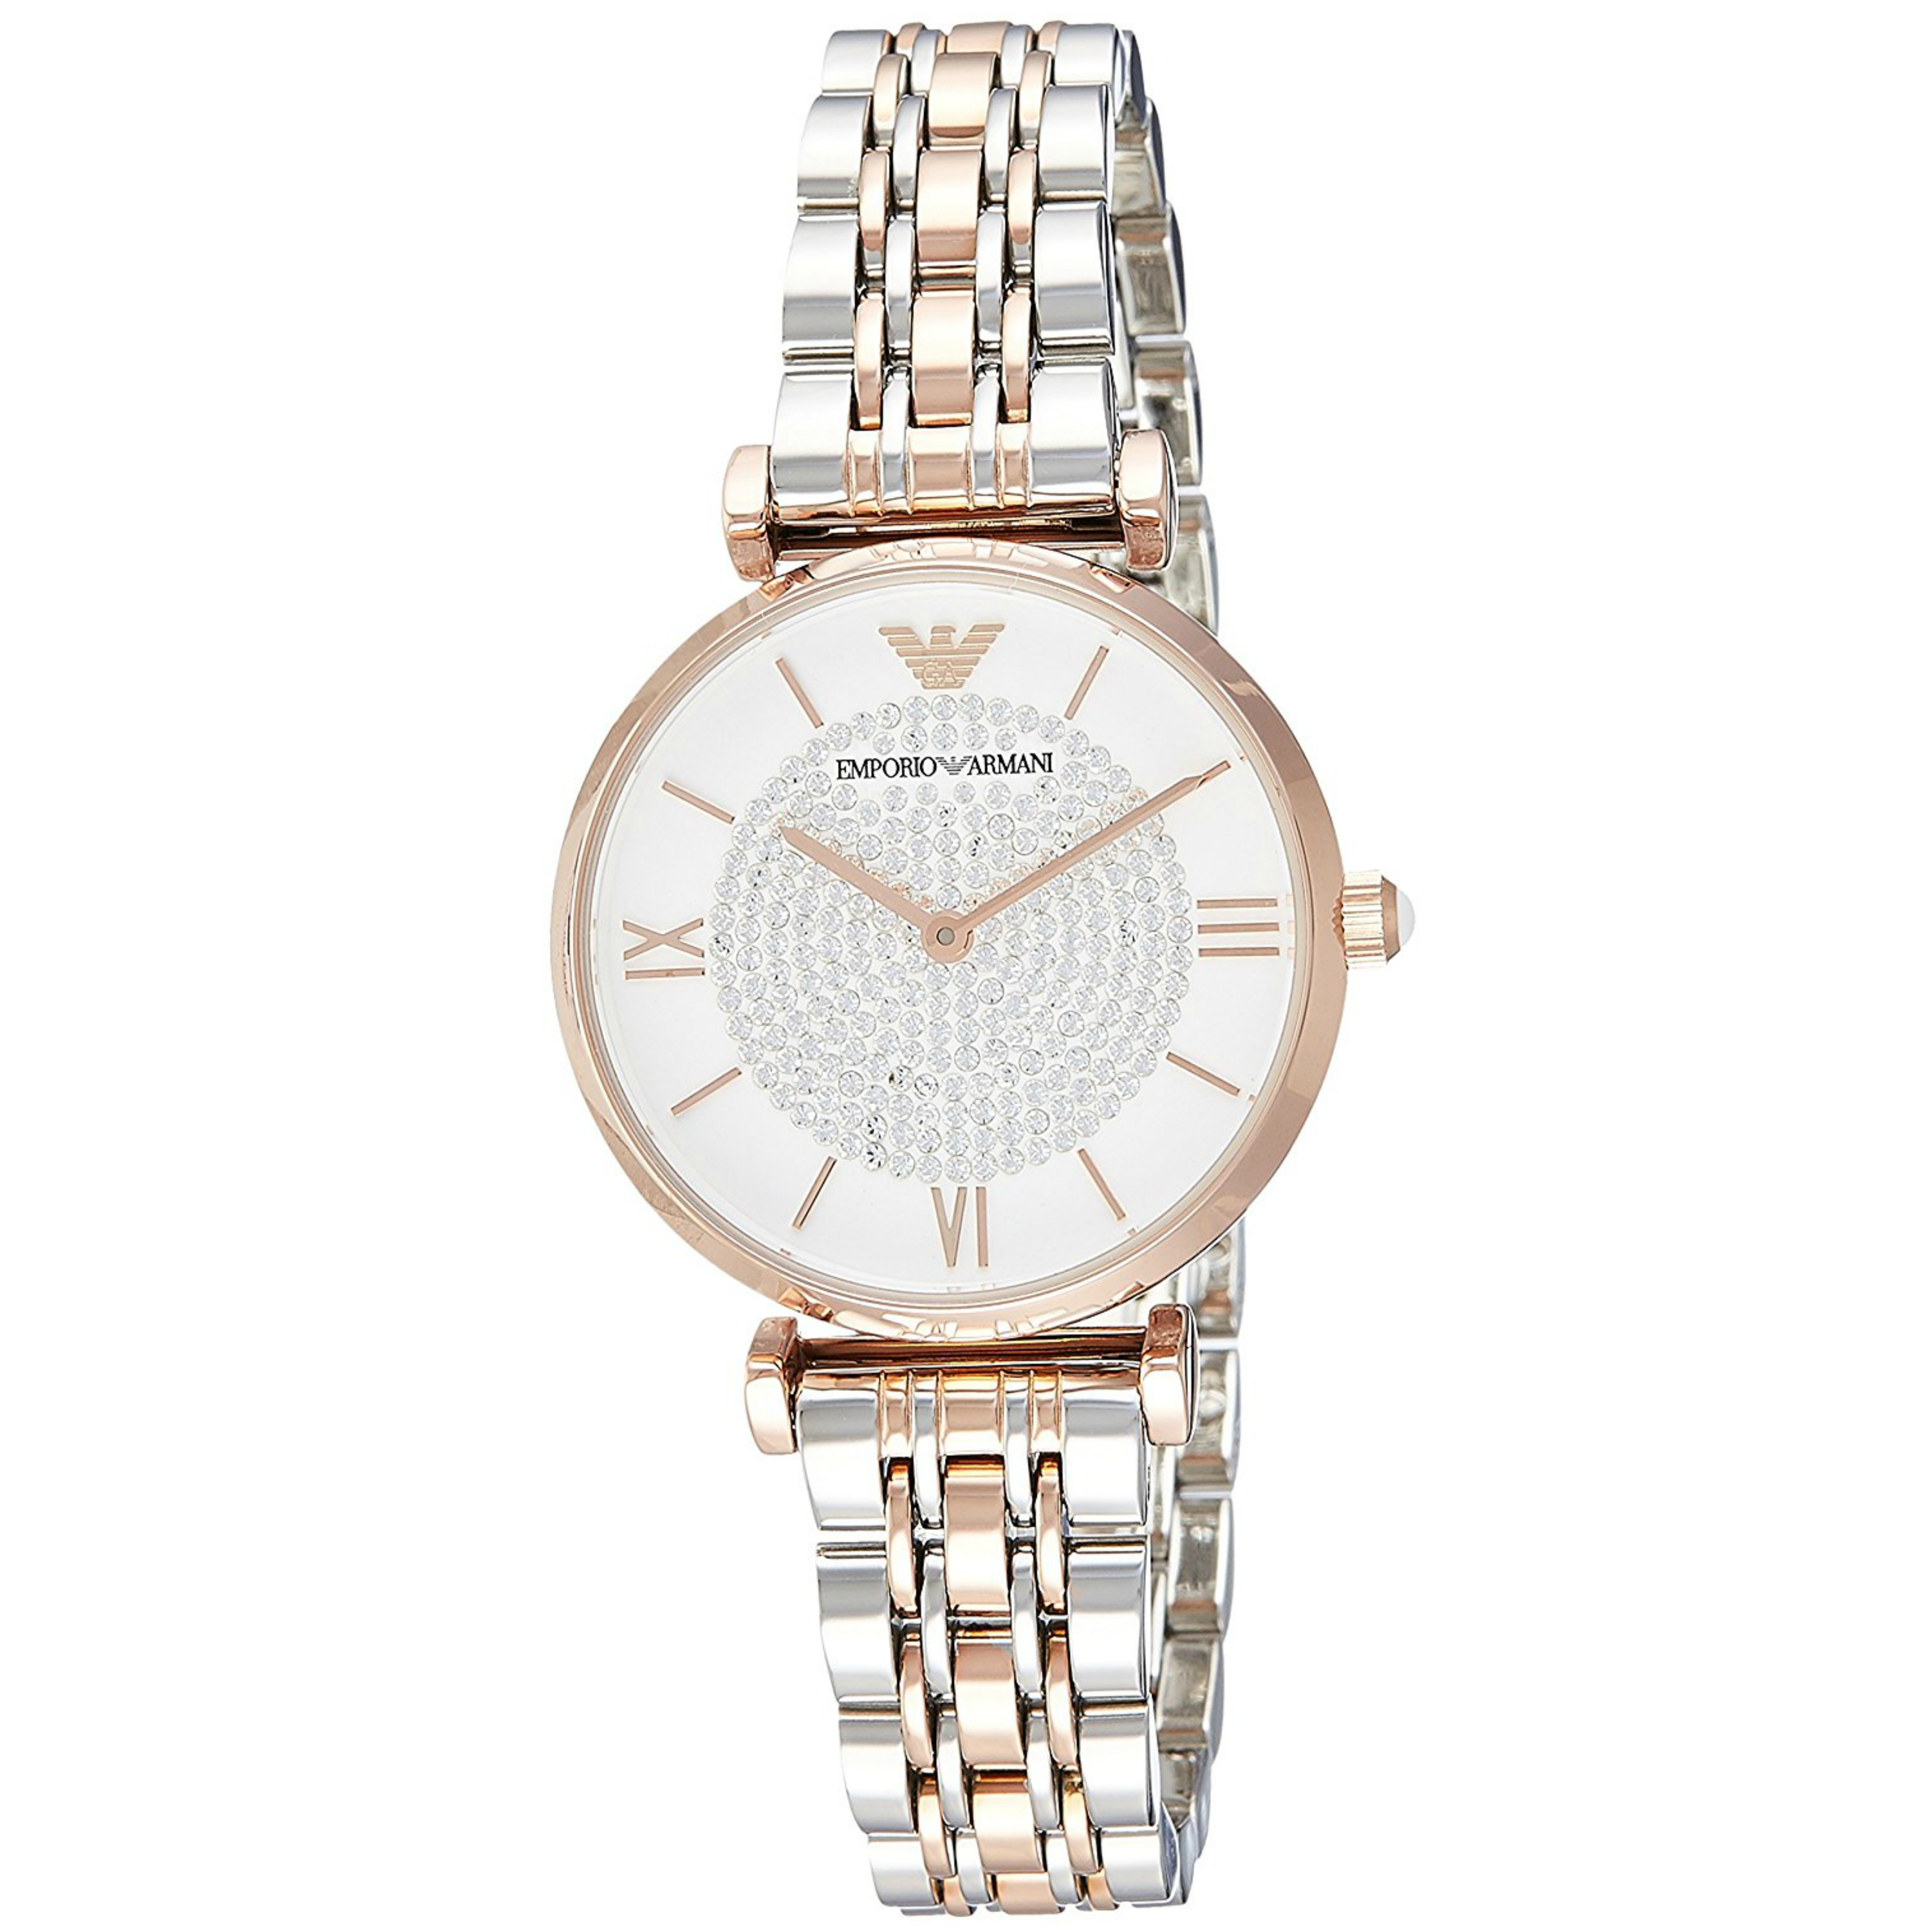 Emporio Armani White Crystal Pave Dial Twotone Ladies Metal Bracelet Round Watch